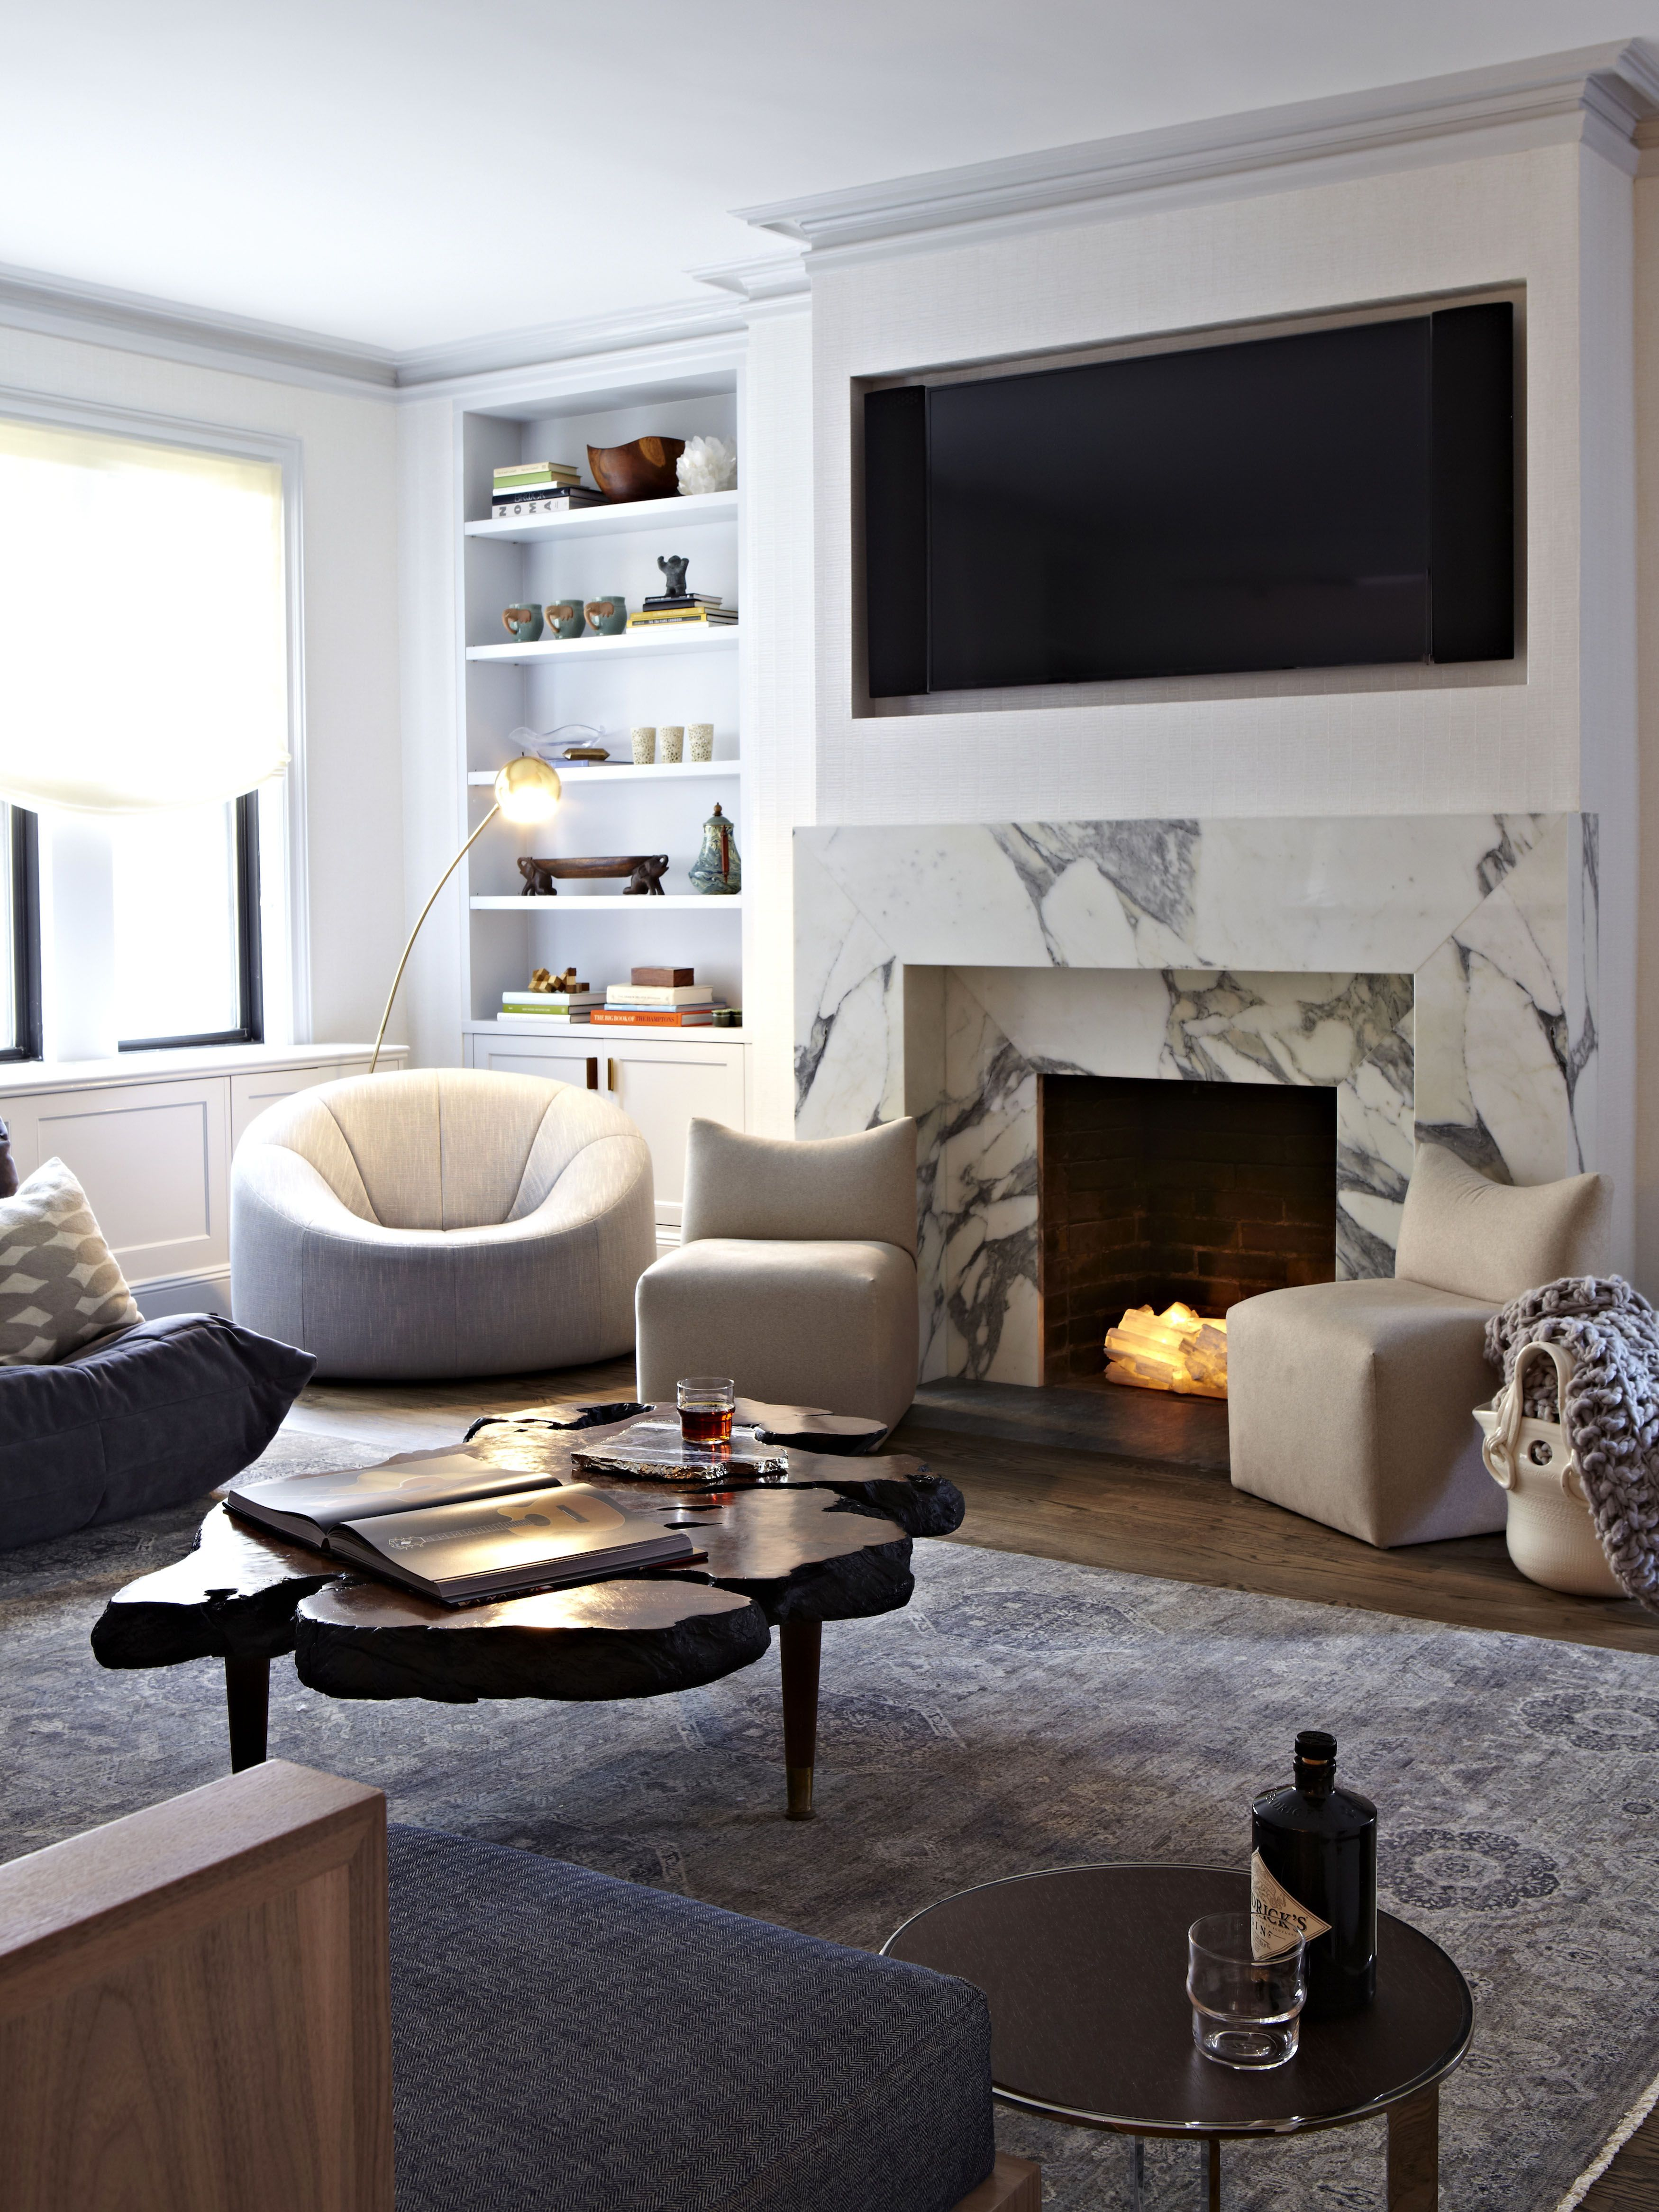 decorate small living room with fireplace black and gold furniture 12 decorating ideas for nonworking design decor